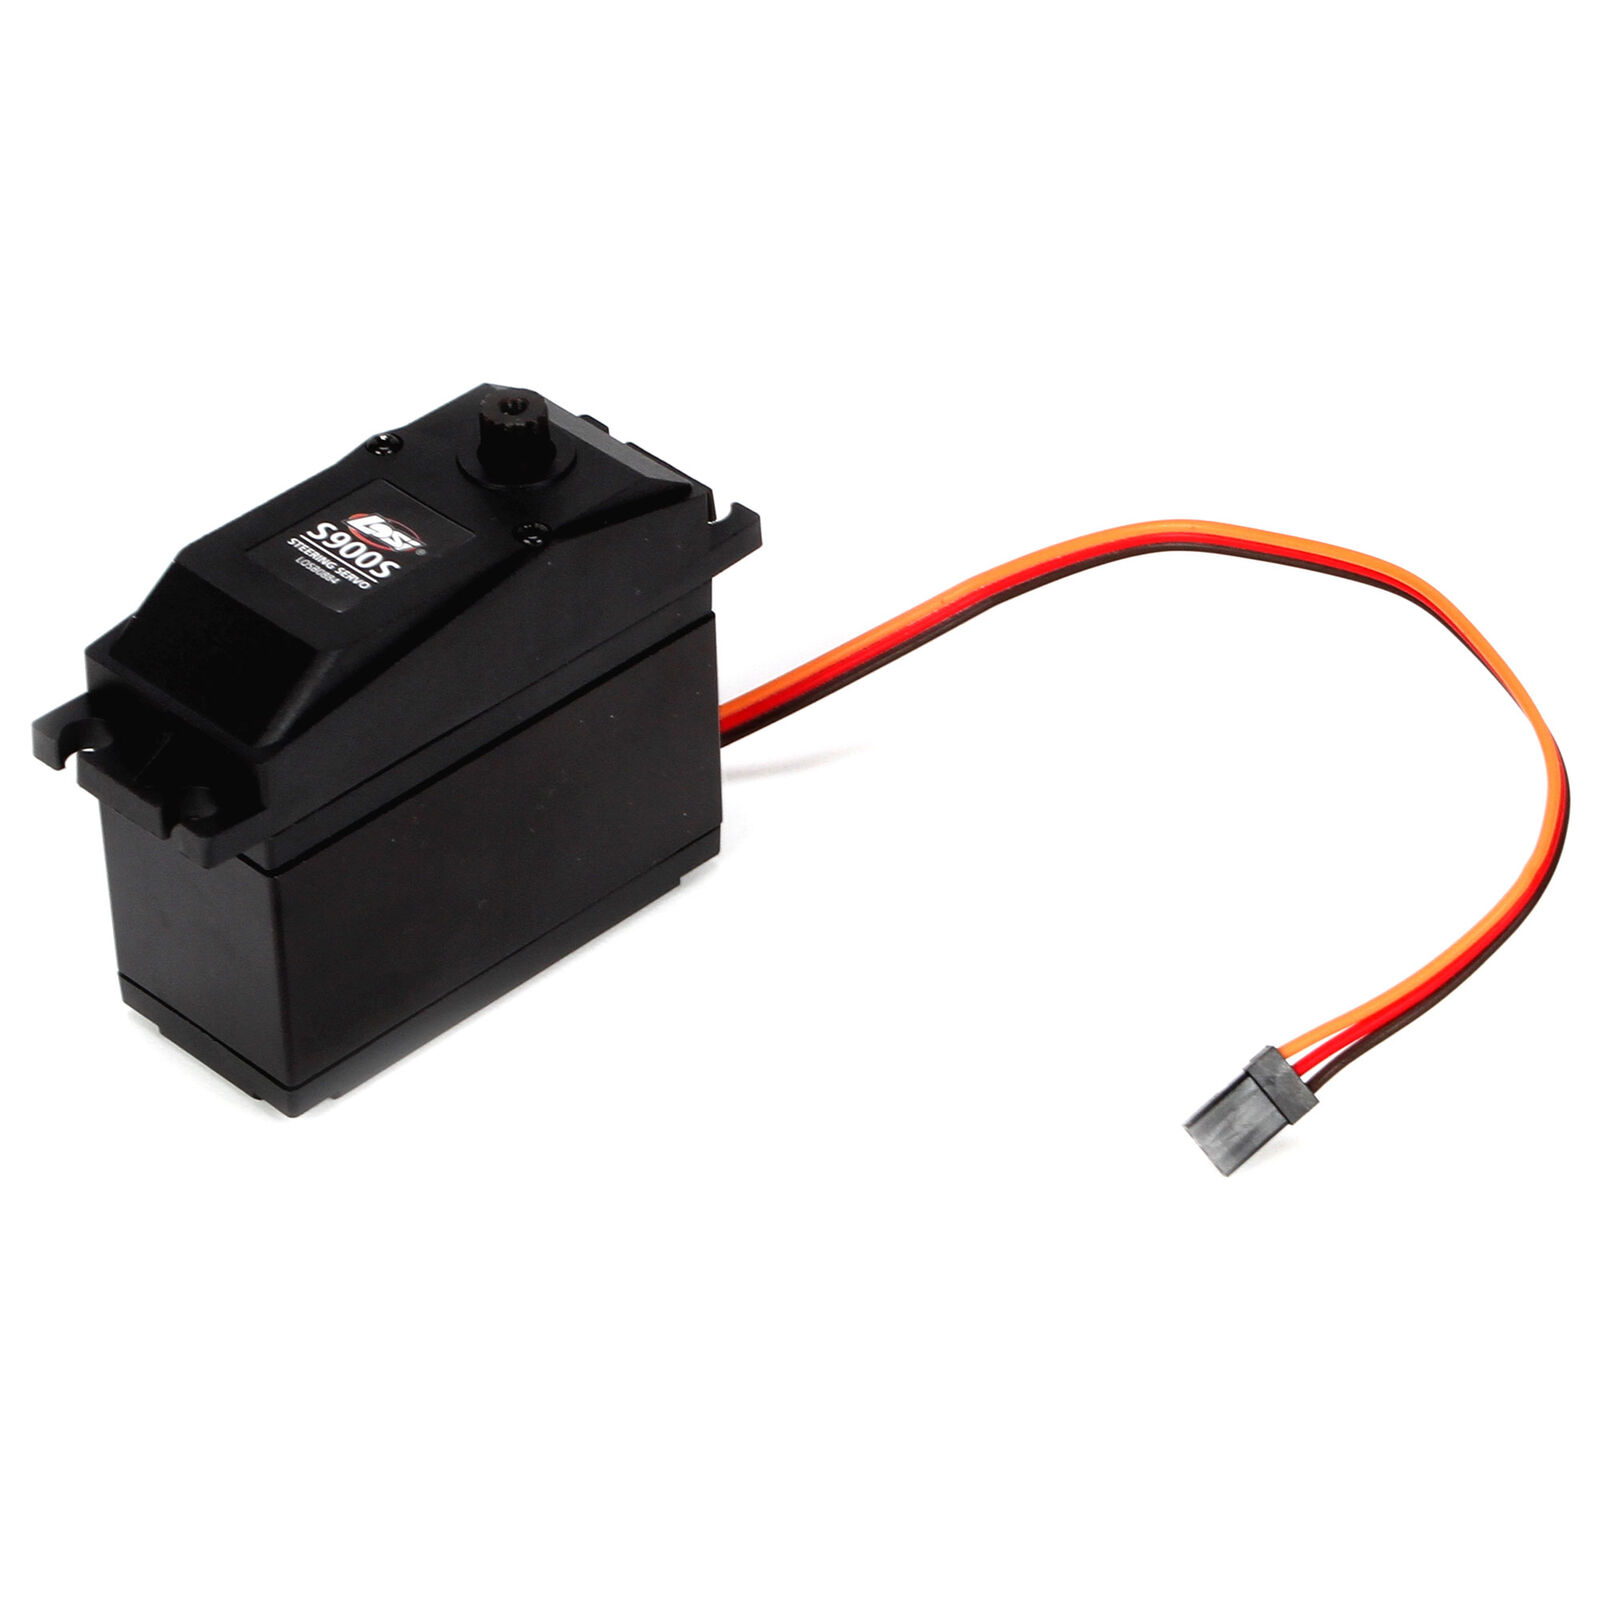 S900S 1/5 Scale Steering Servo with Metal Gear 5IVE-T